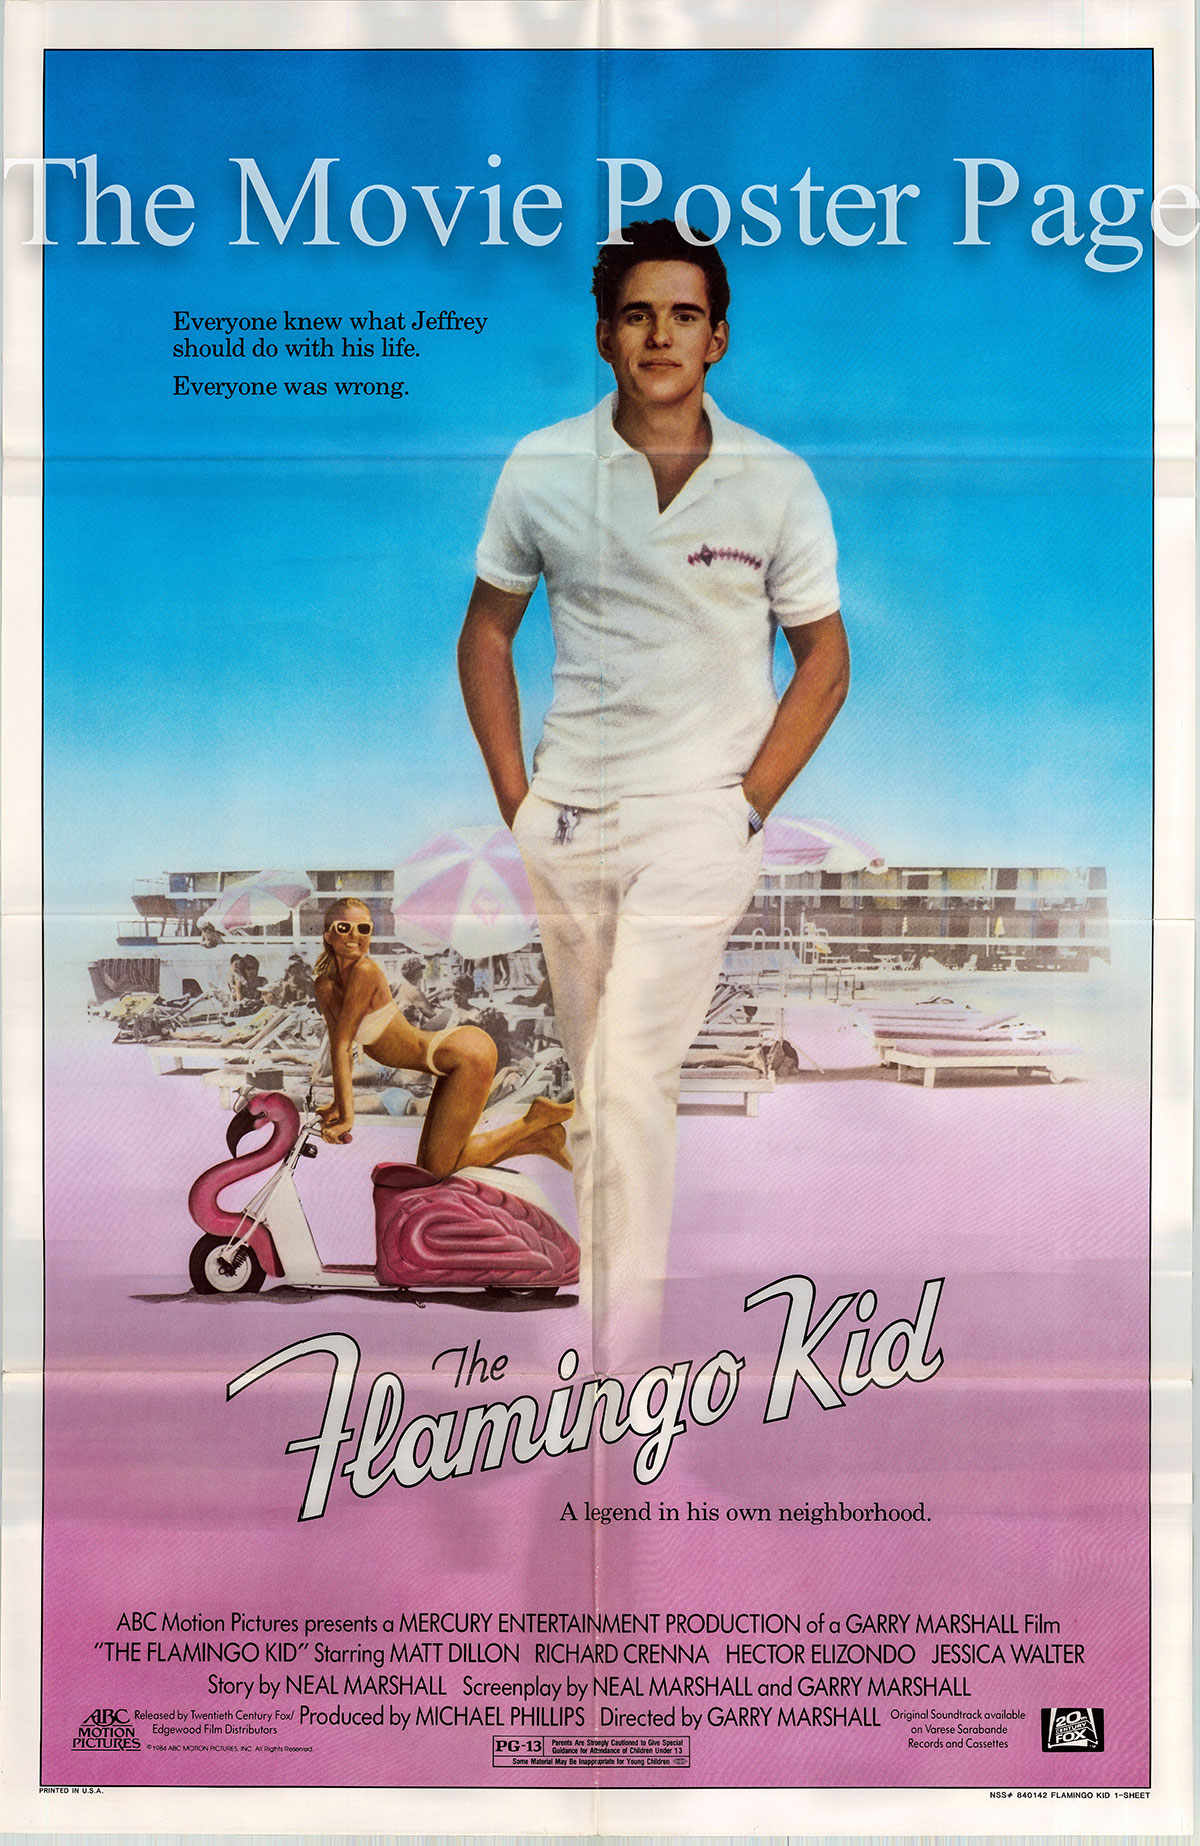 Pictured is a US one-sheet poster for the 1984 Garry Marshall film The Flamingo Kid starring Matt Dillon.